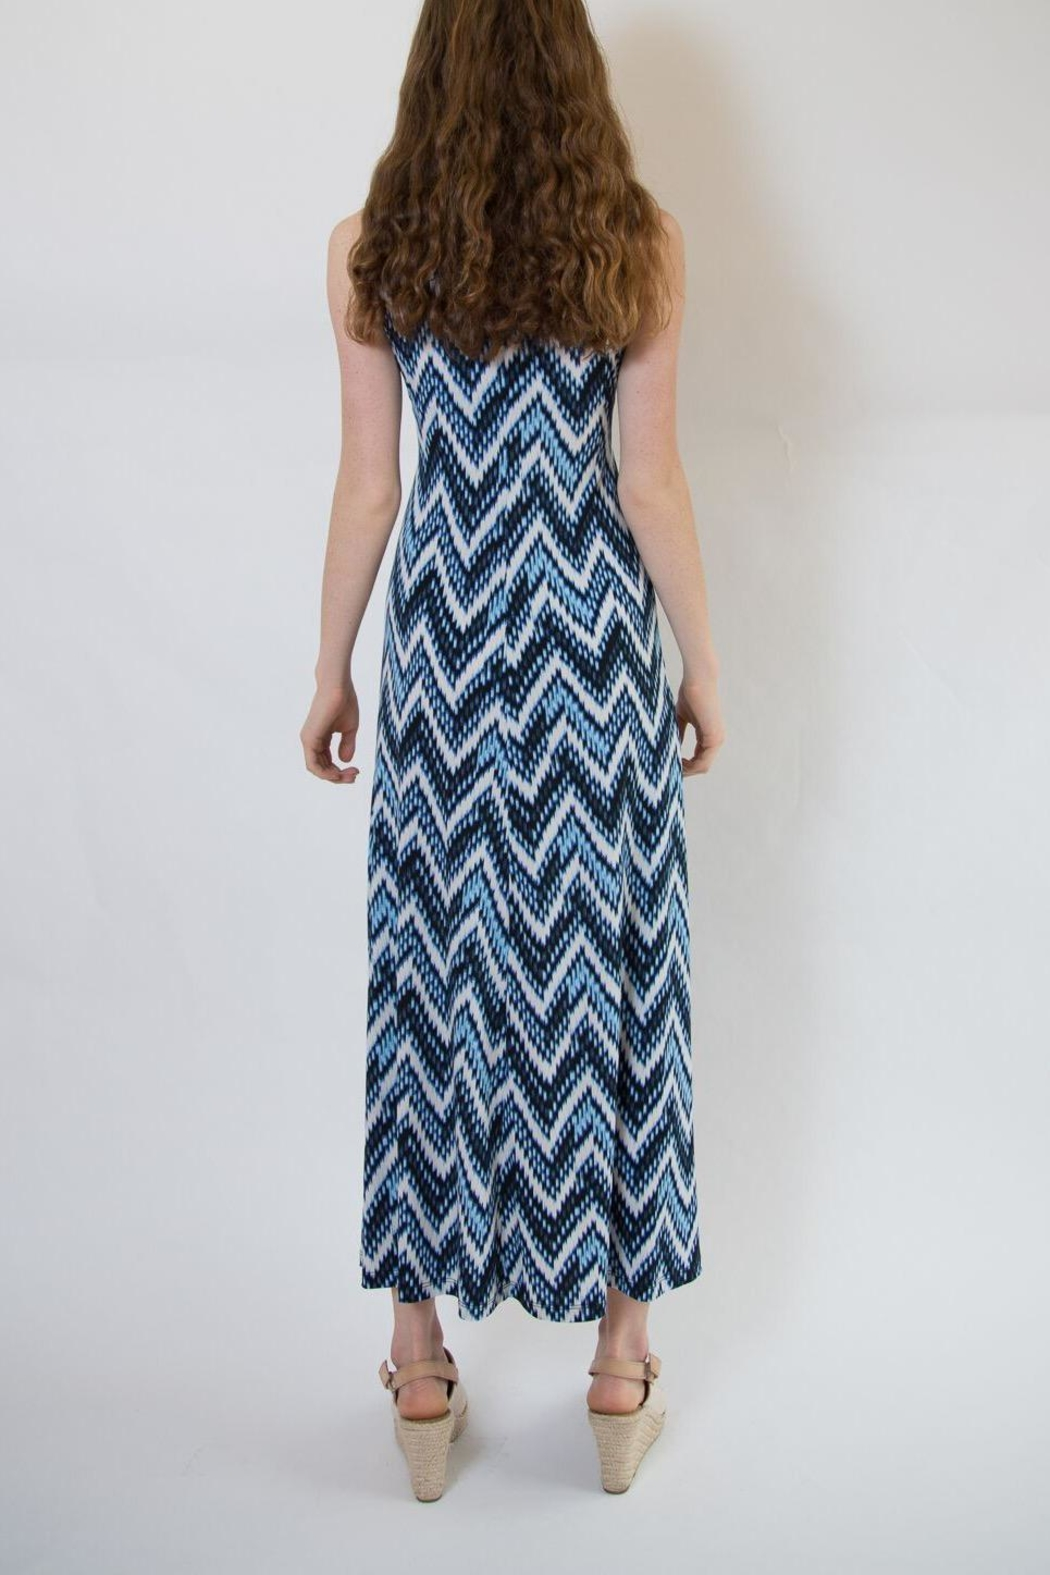 Veronica M Blue Multi Maxi Dress - Side Cropped Image